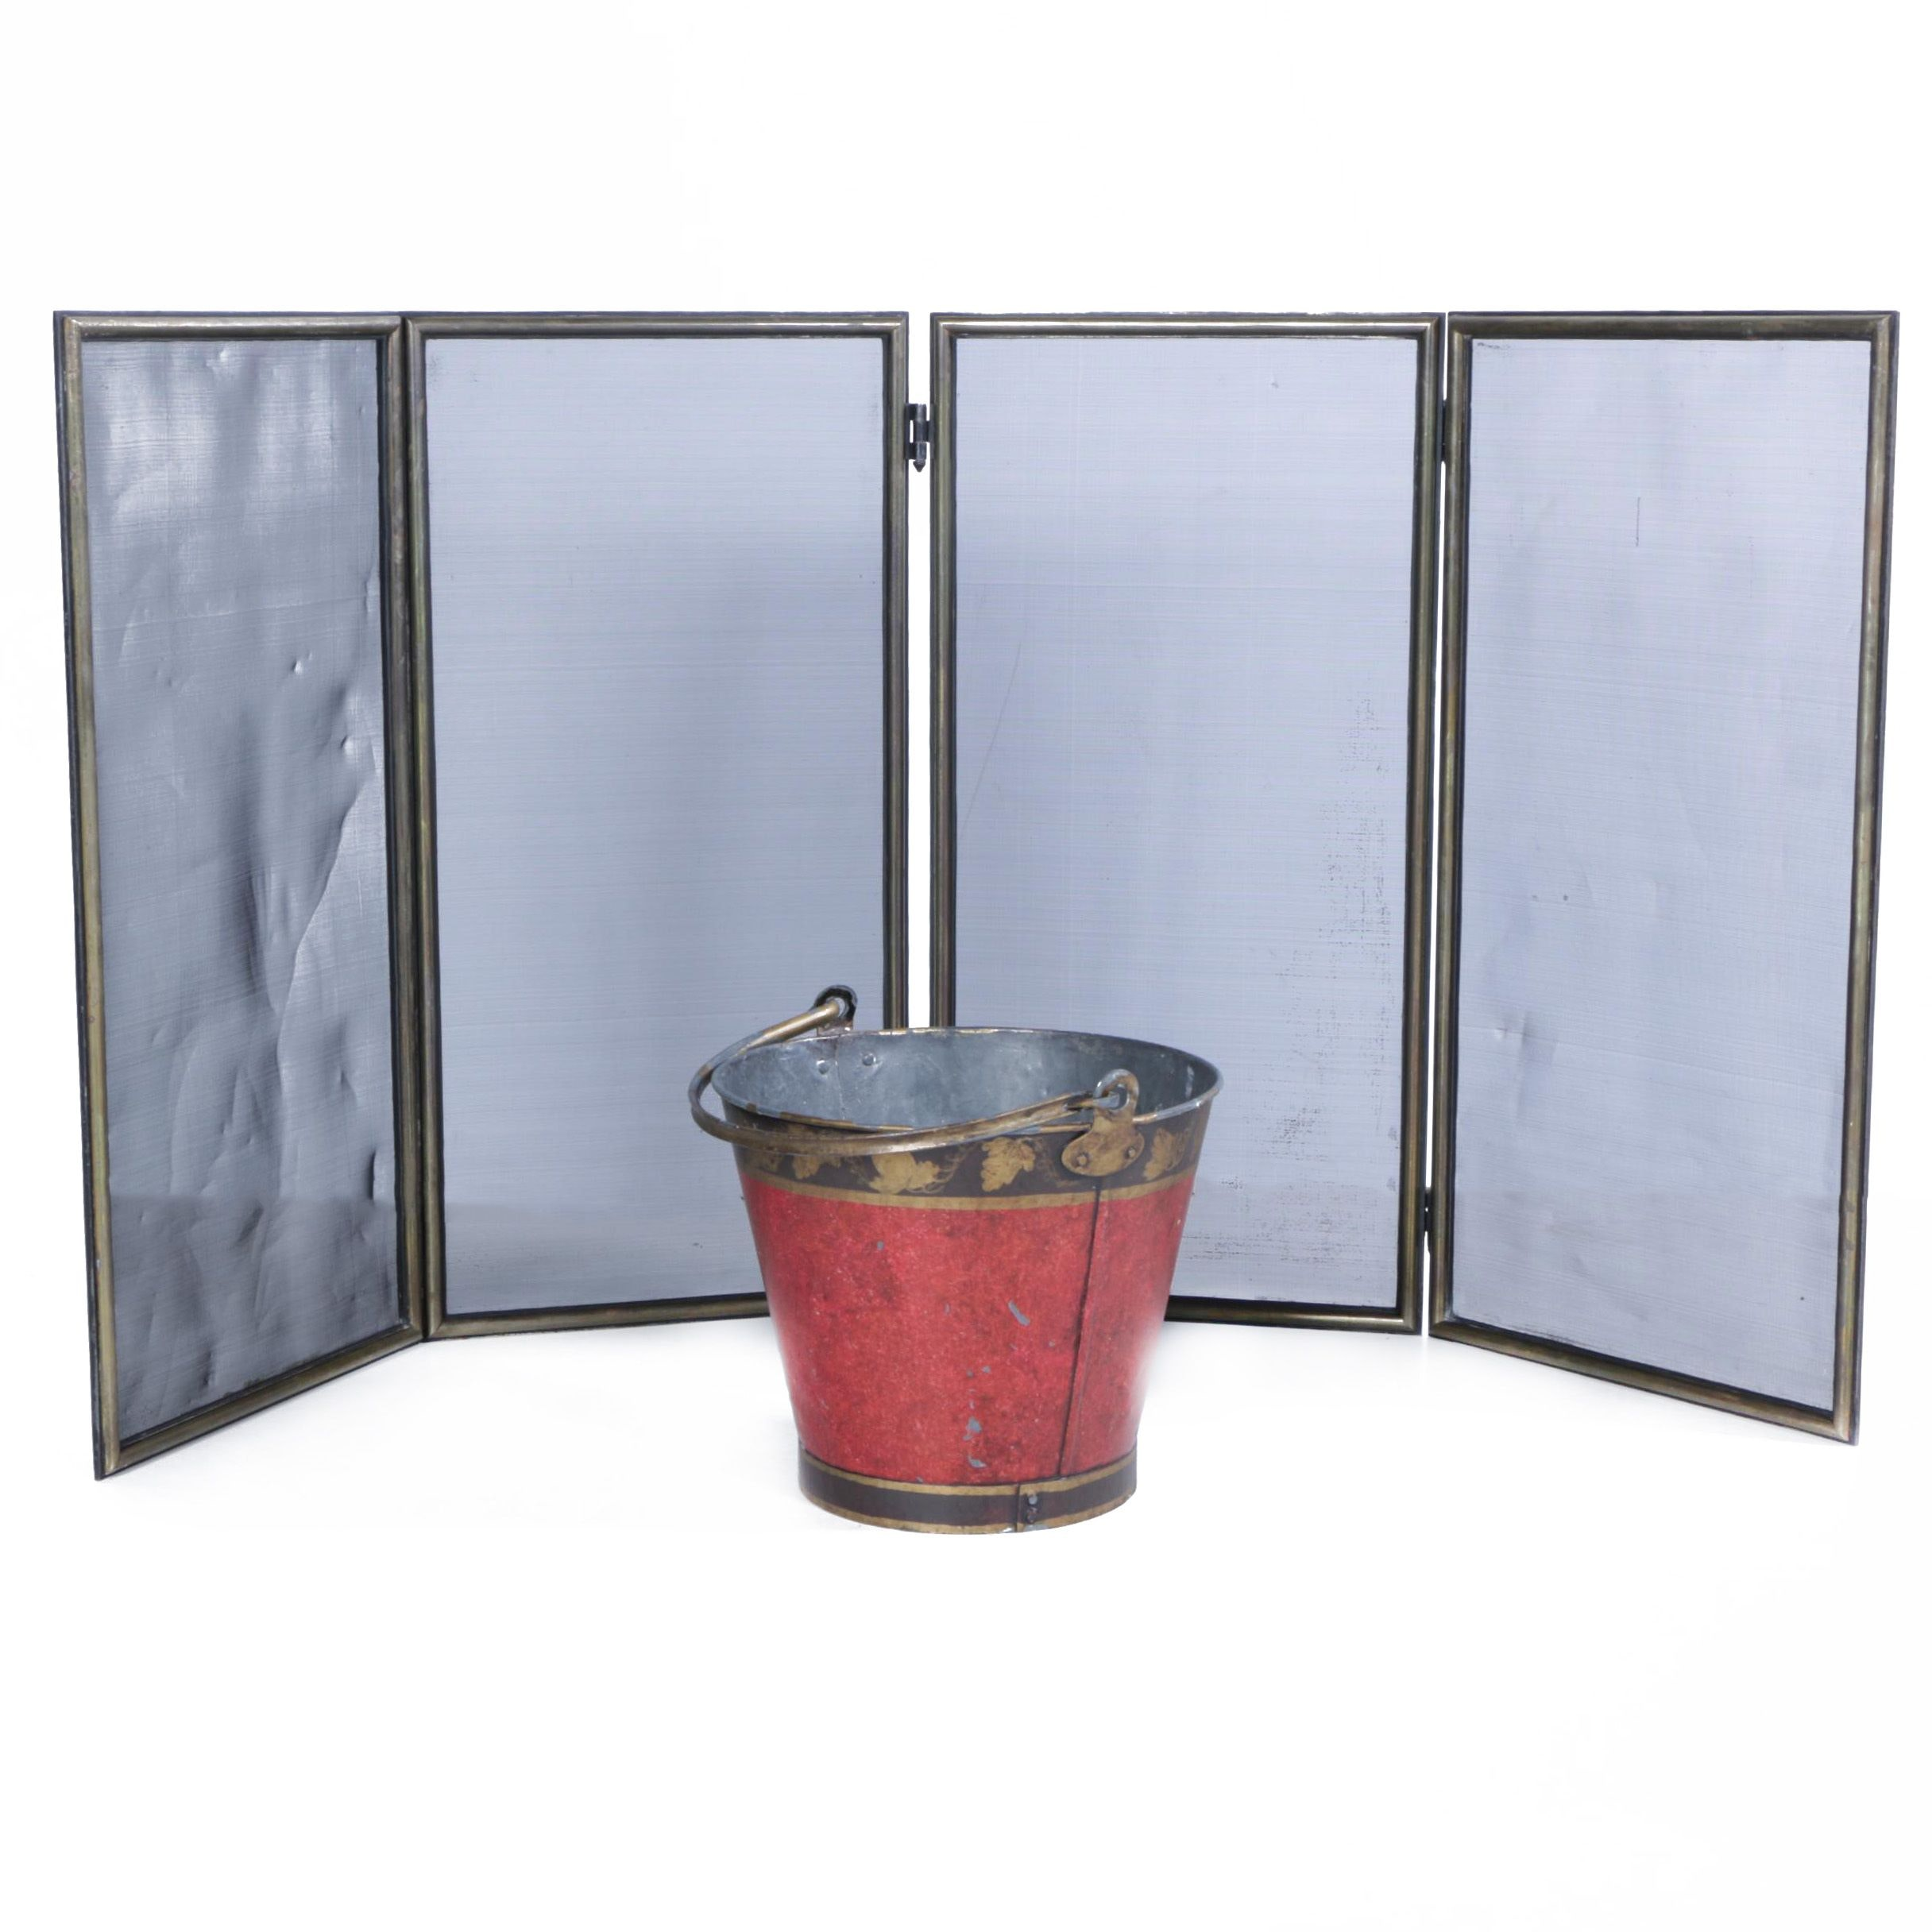 Fireplace Screen and Bucket